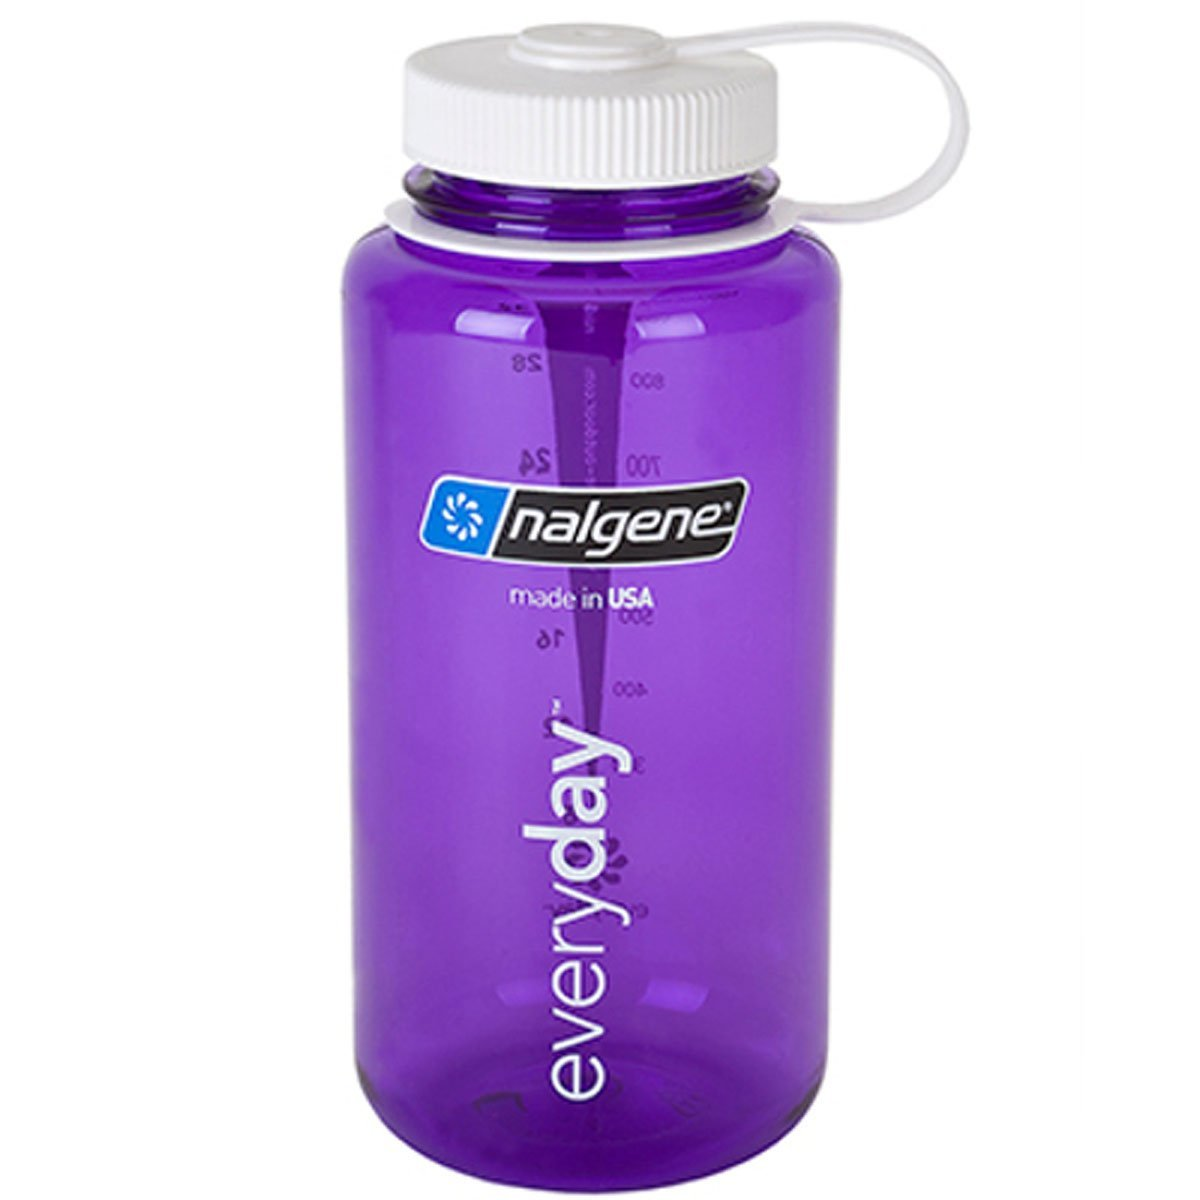 Nalgene 32oz Tritan Wide Mouth Bottle Purple, 32 oz N